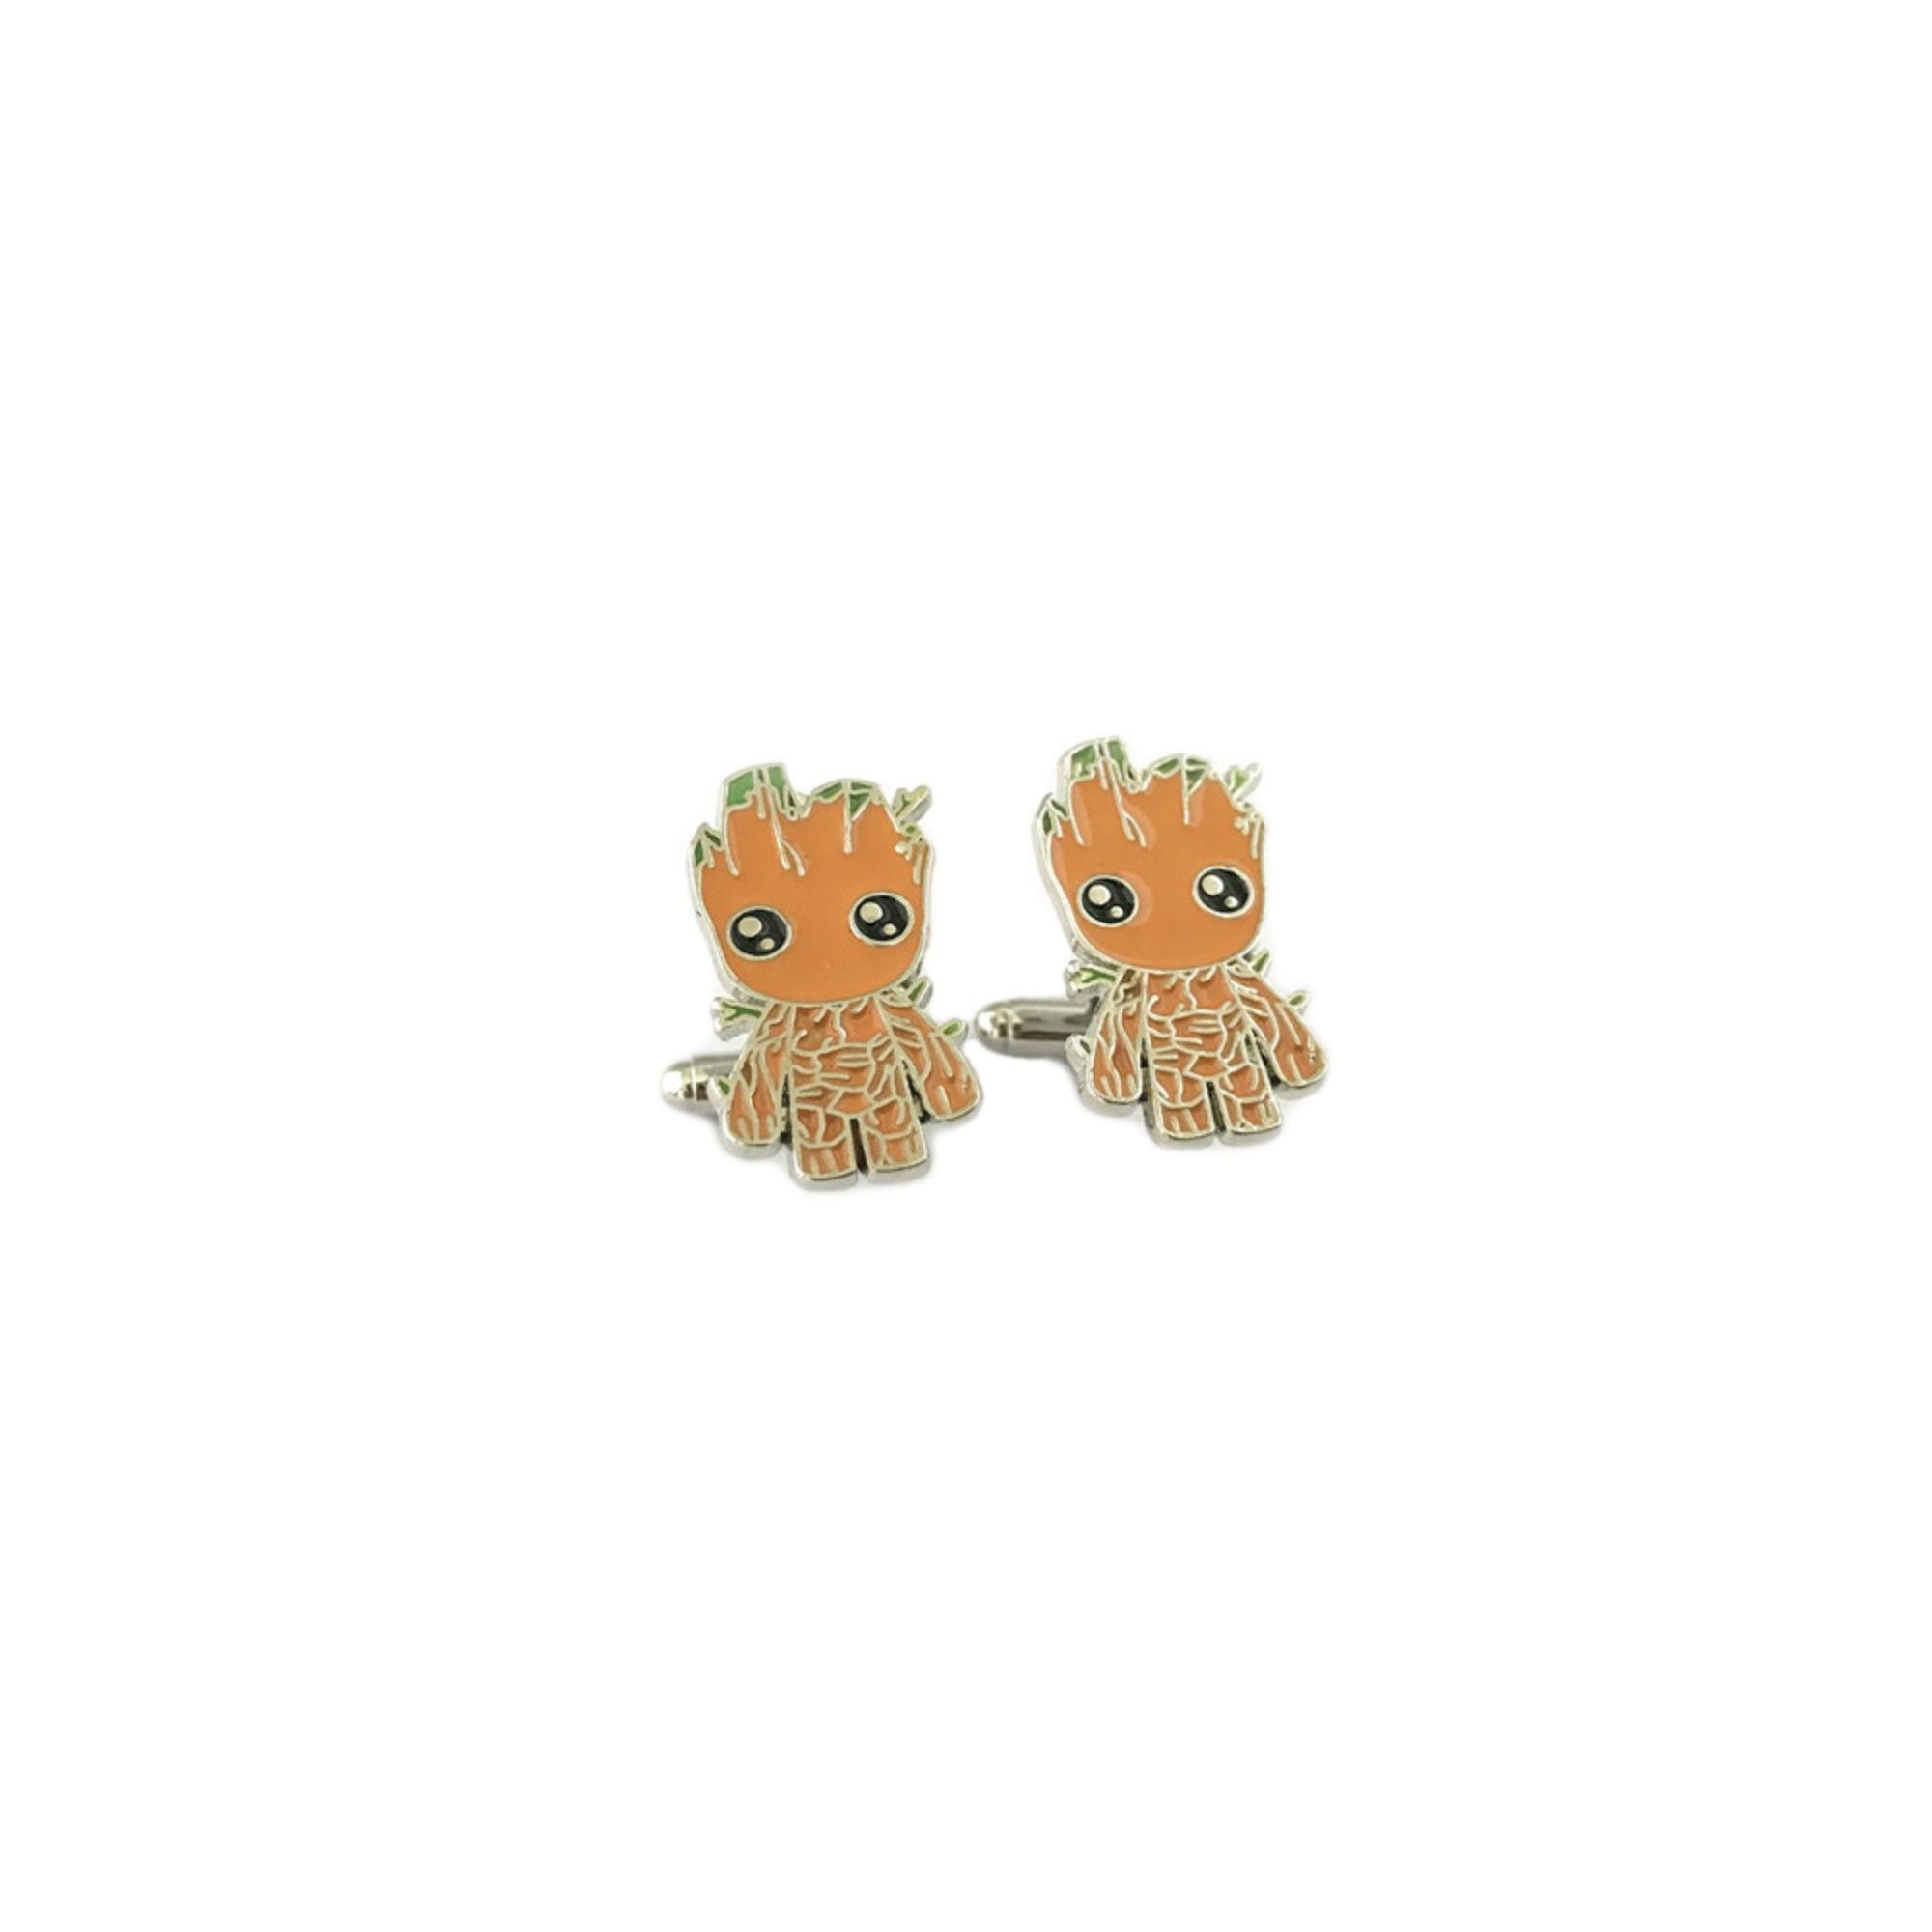 Athena Brand Movie Comics Marvel Guardians of the Galaxy Groot Cufflinks In Gift Box by Athena Brand (Image #1)